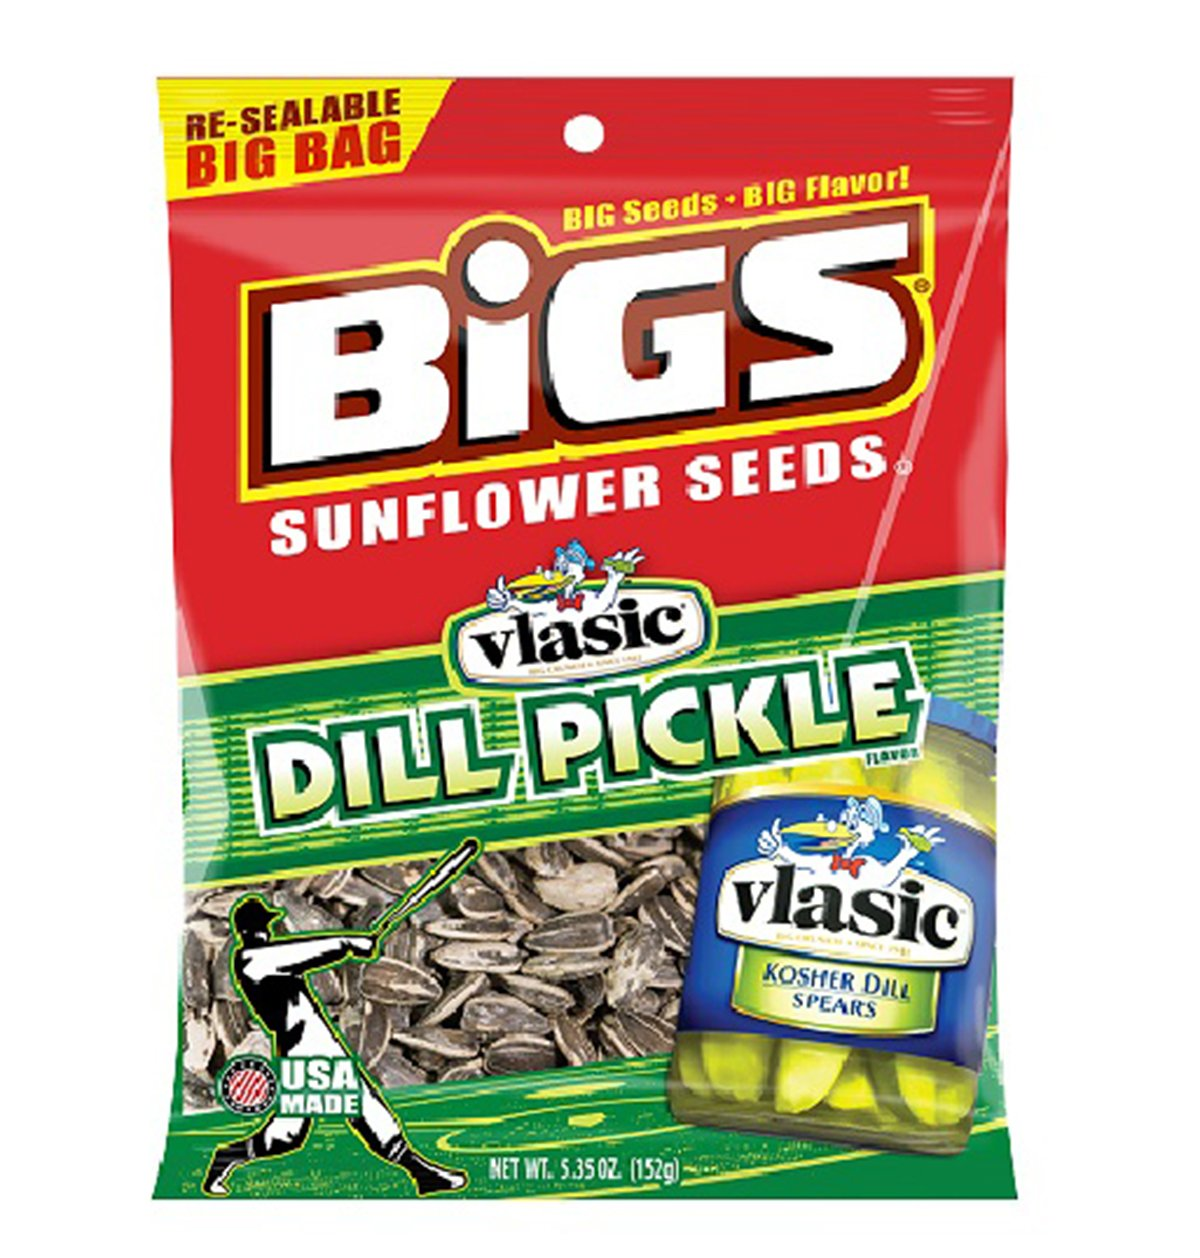 Product Of Bigs, Sunflower Seeds Dill Pickle - Bag, Count 12 (5.35 oz) - Sunflower Seeds / Grab Varieties & Flavors by BIGS